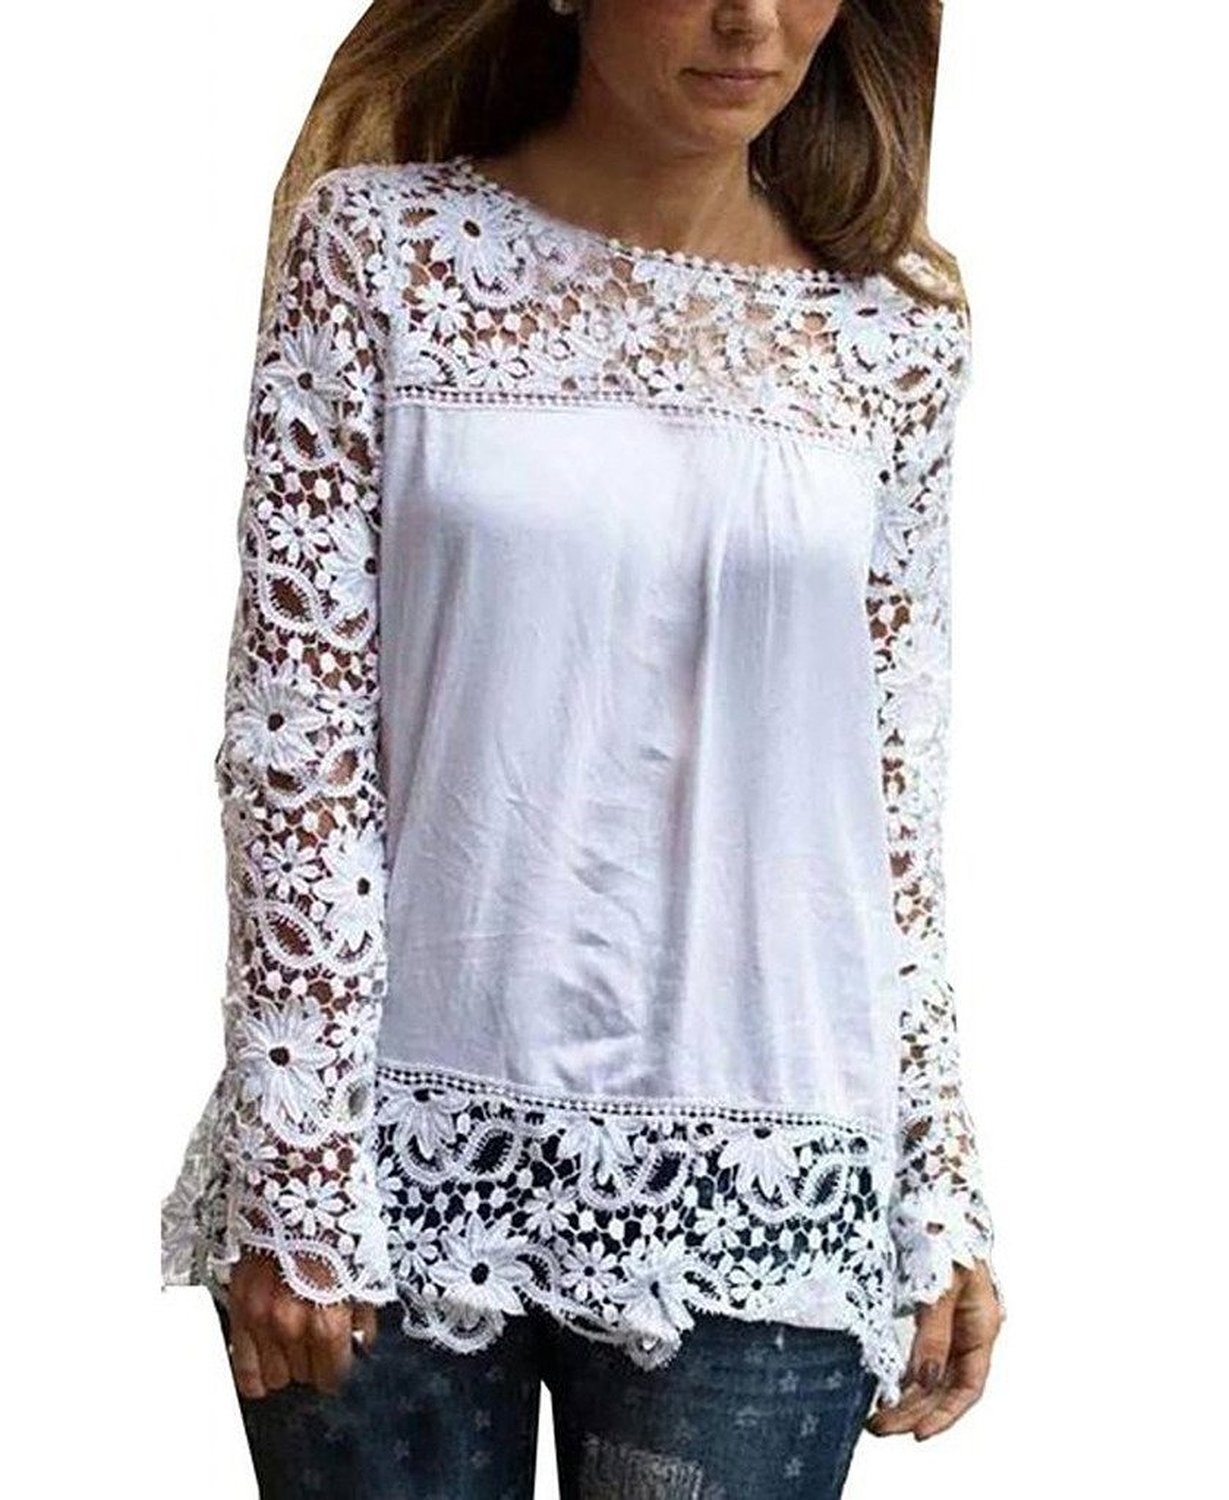 Amoin Women's White Lace Sleeve Chiffon Shirt at Amazon Women's Clothing store